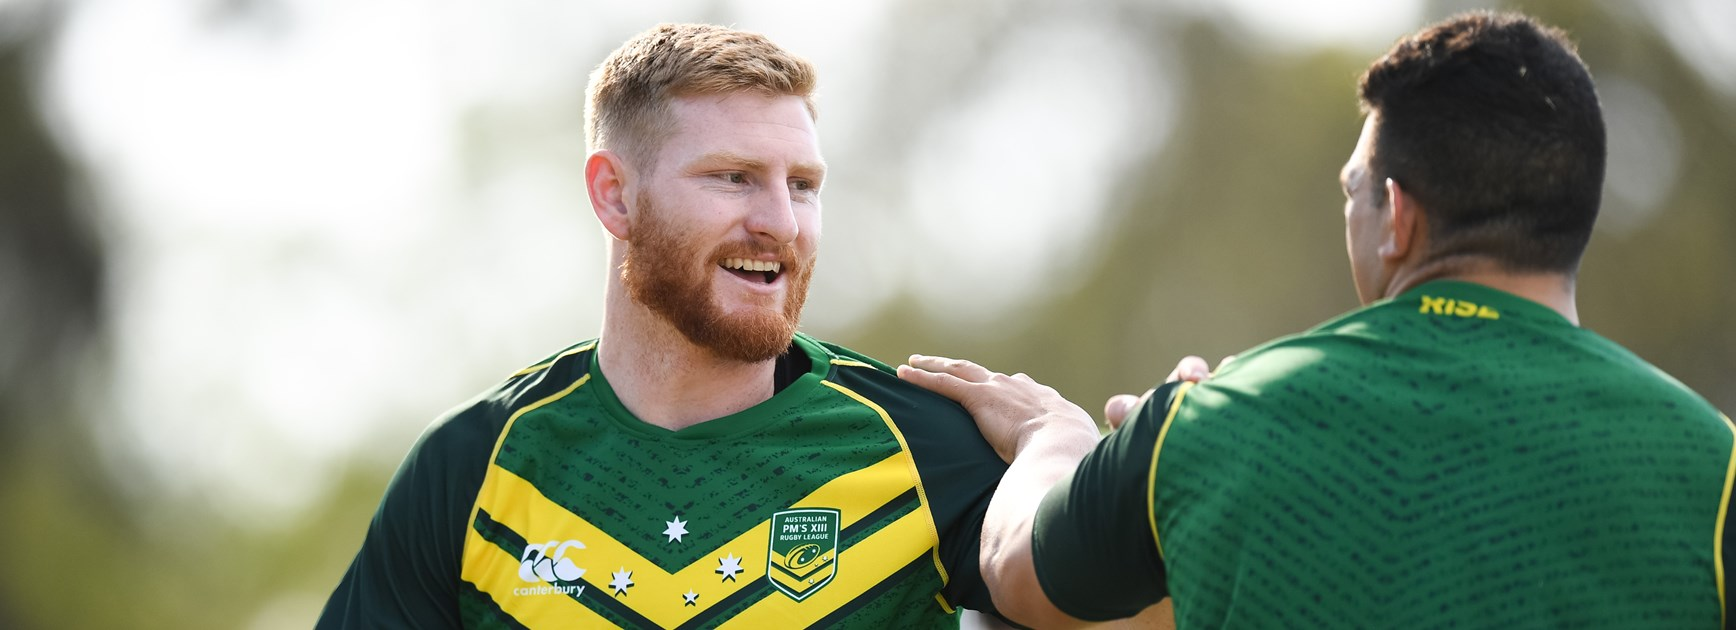 Prime Minister's XIII v Fiji teams, how to watch